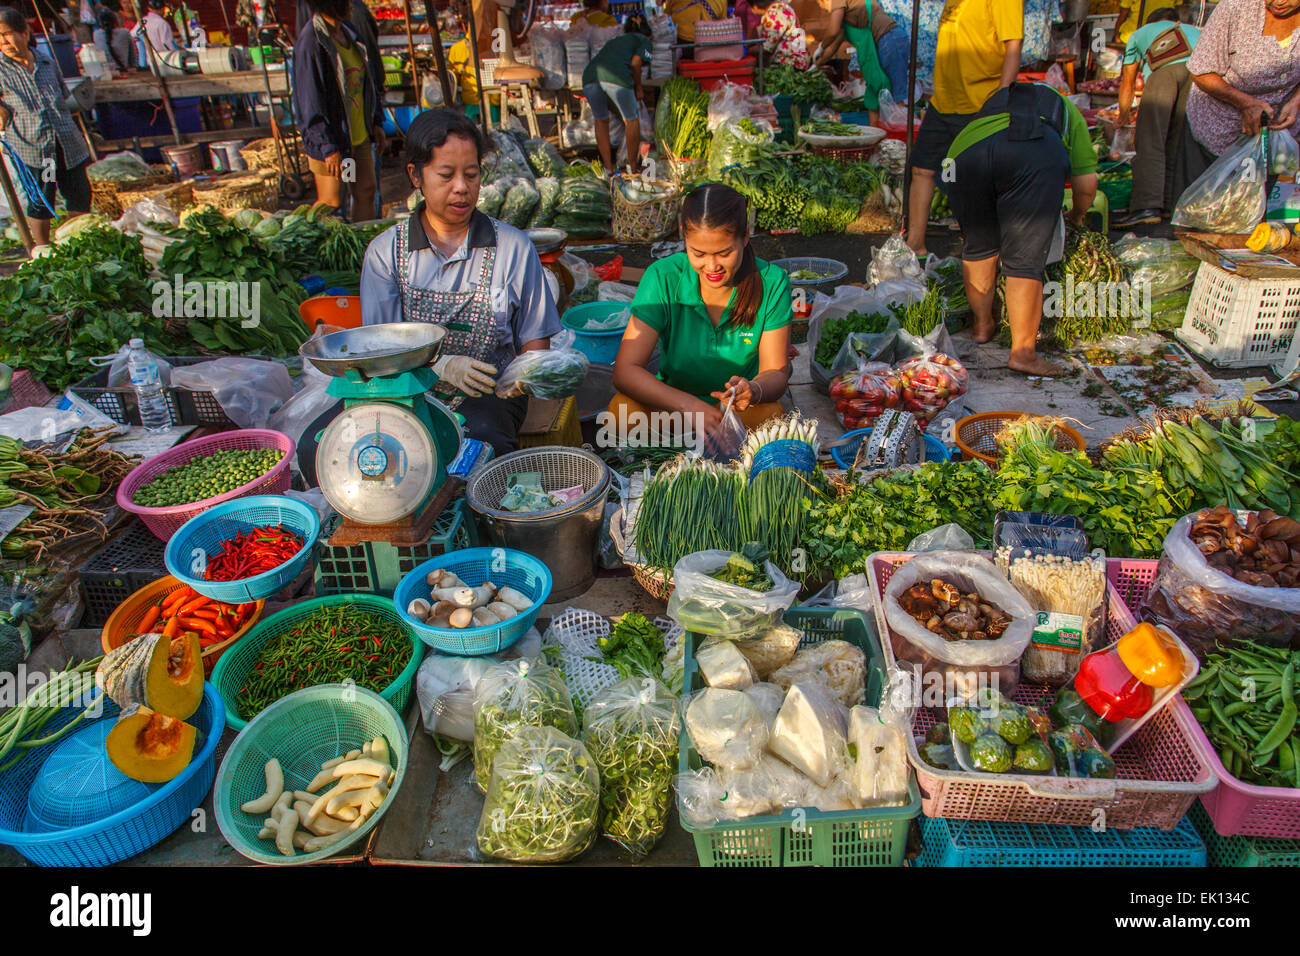 Vegetables seller at Nonthaburi market - Stock Image